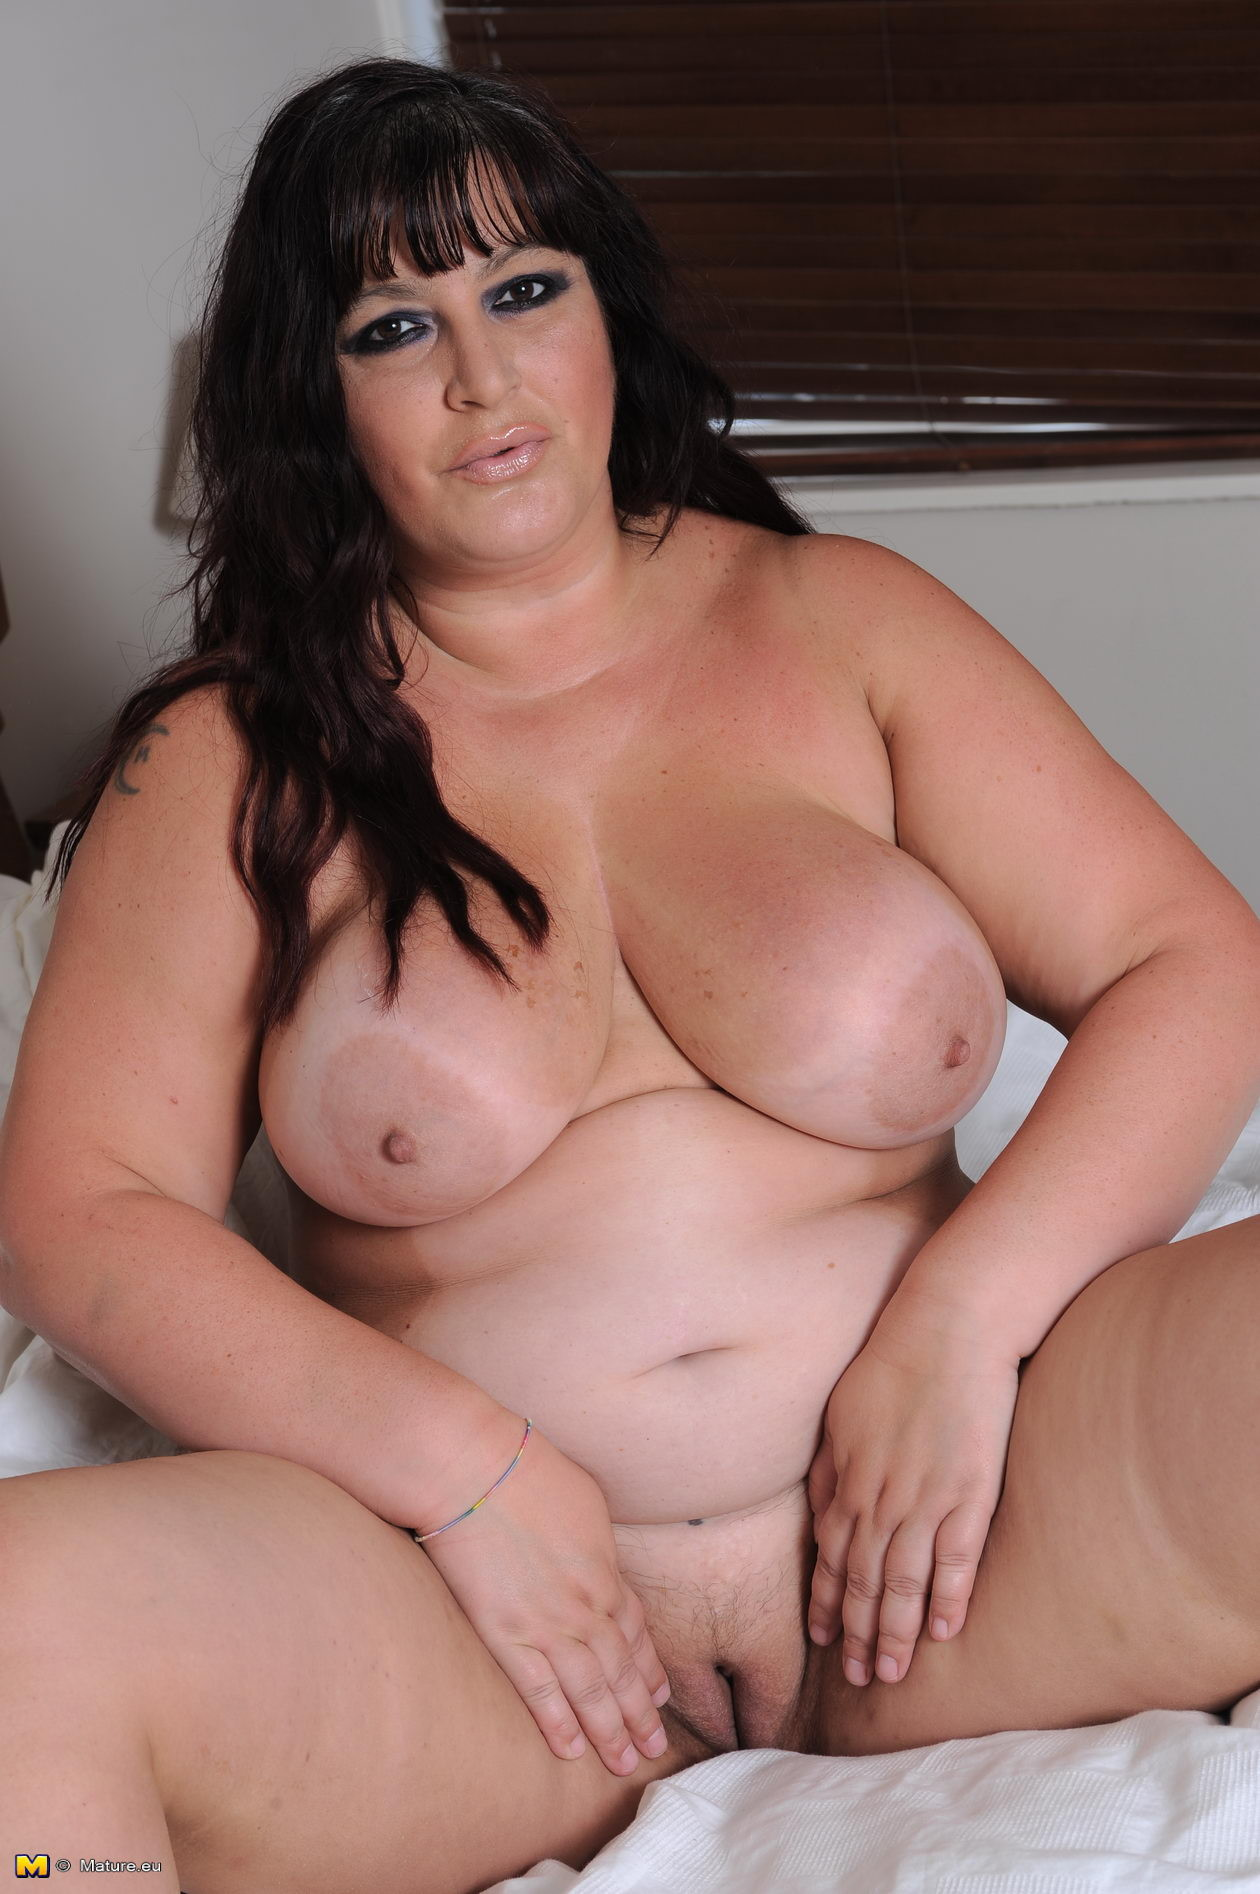 The ladies bbw fat sex pirate